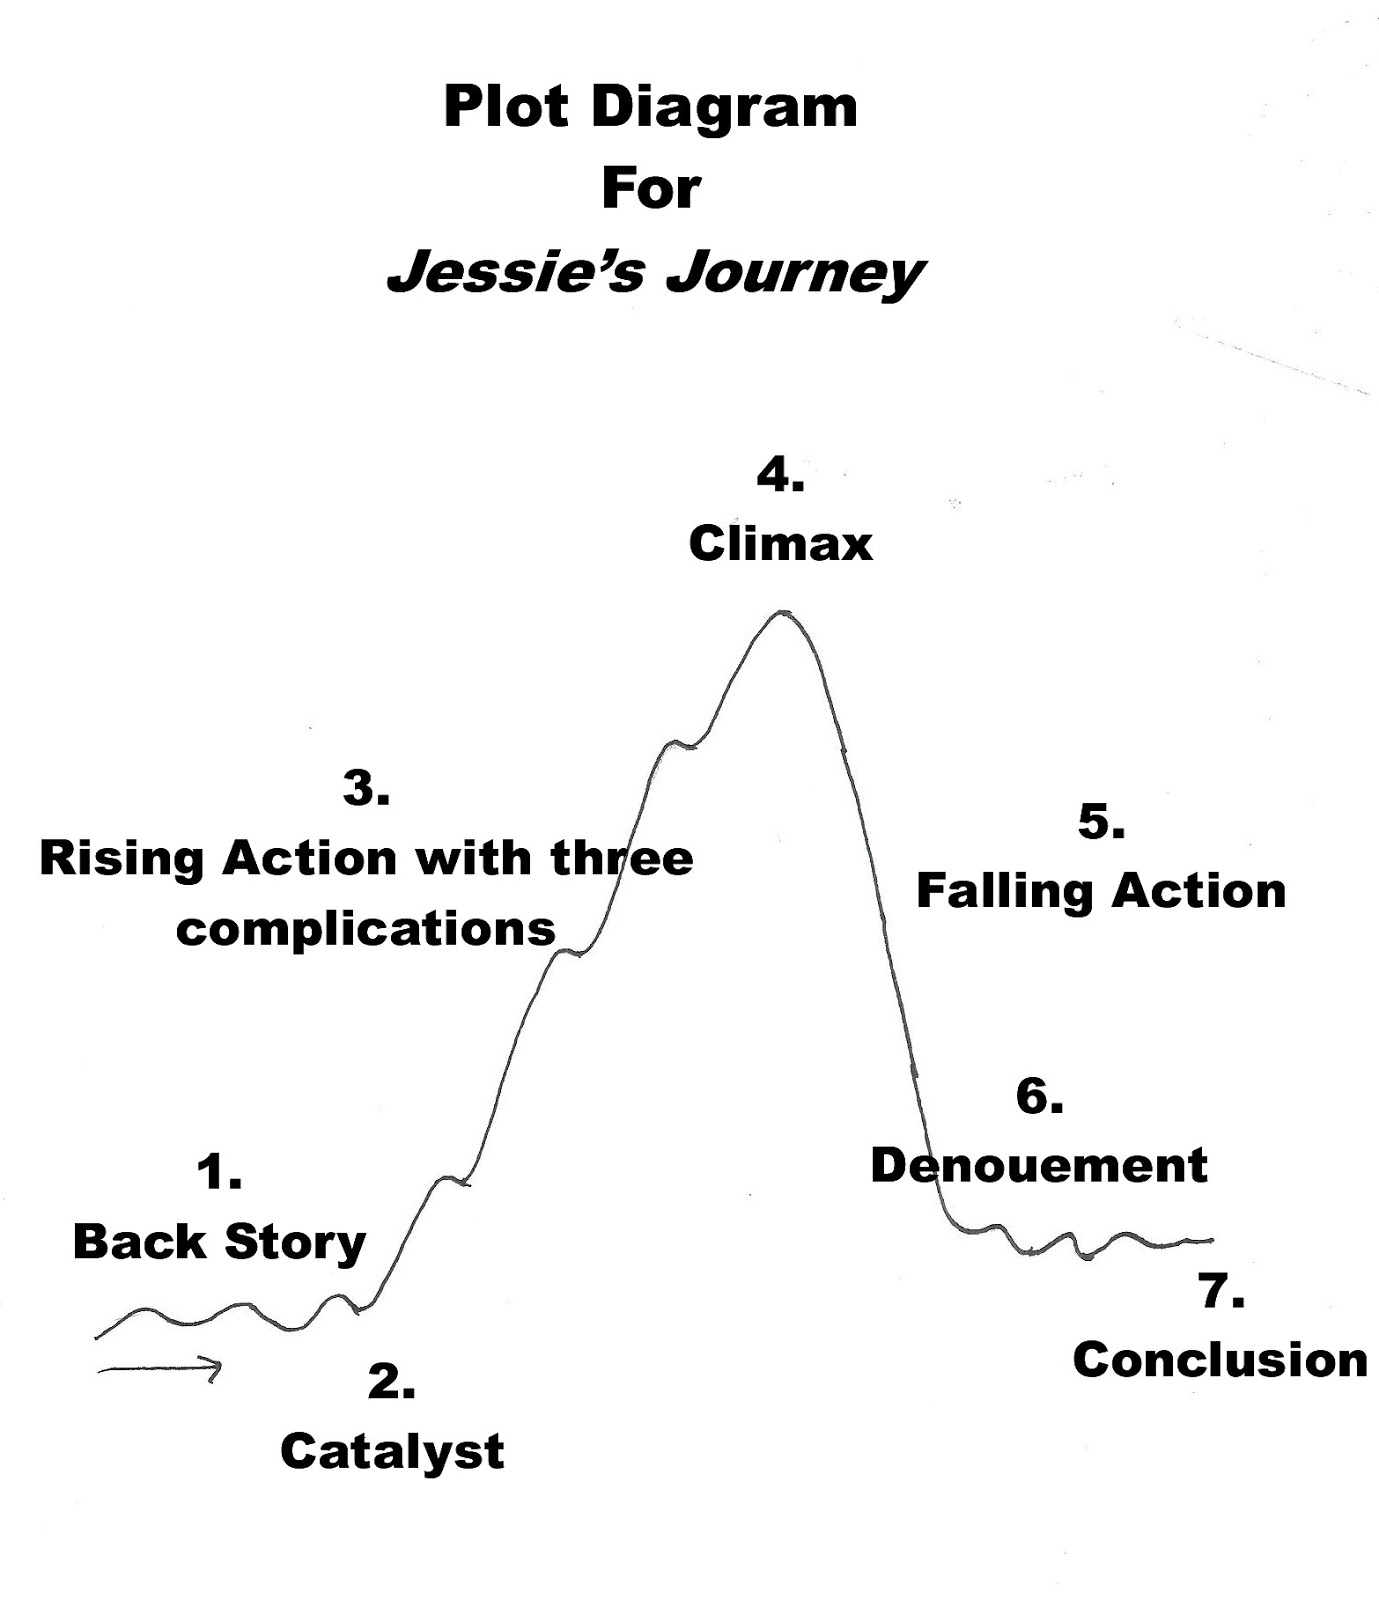 plot diagram falling action meaning origami dog jump up to chapter books 148 for jessie 39s